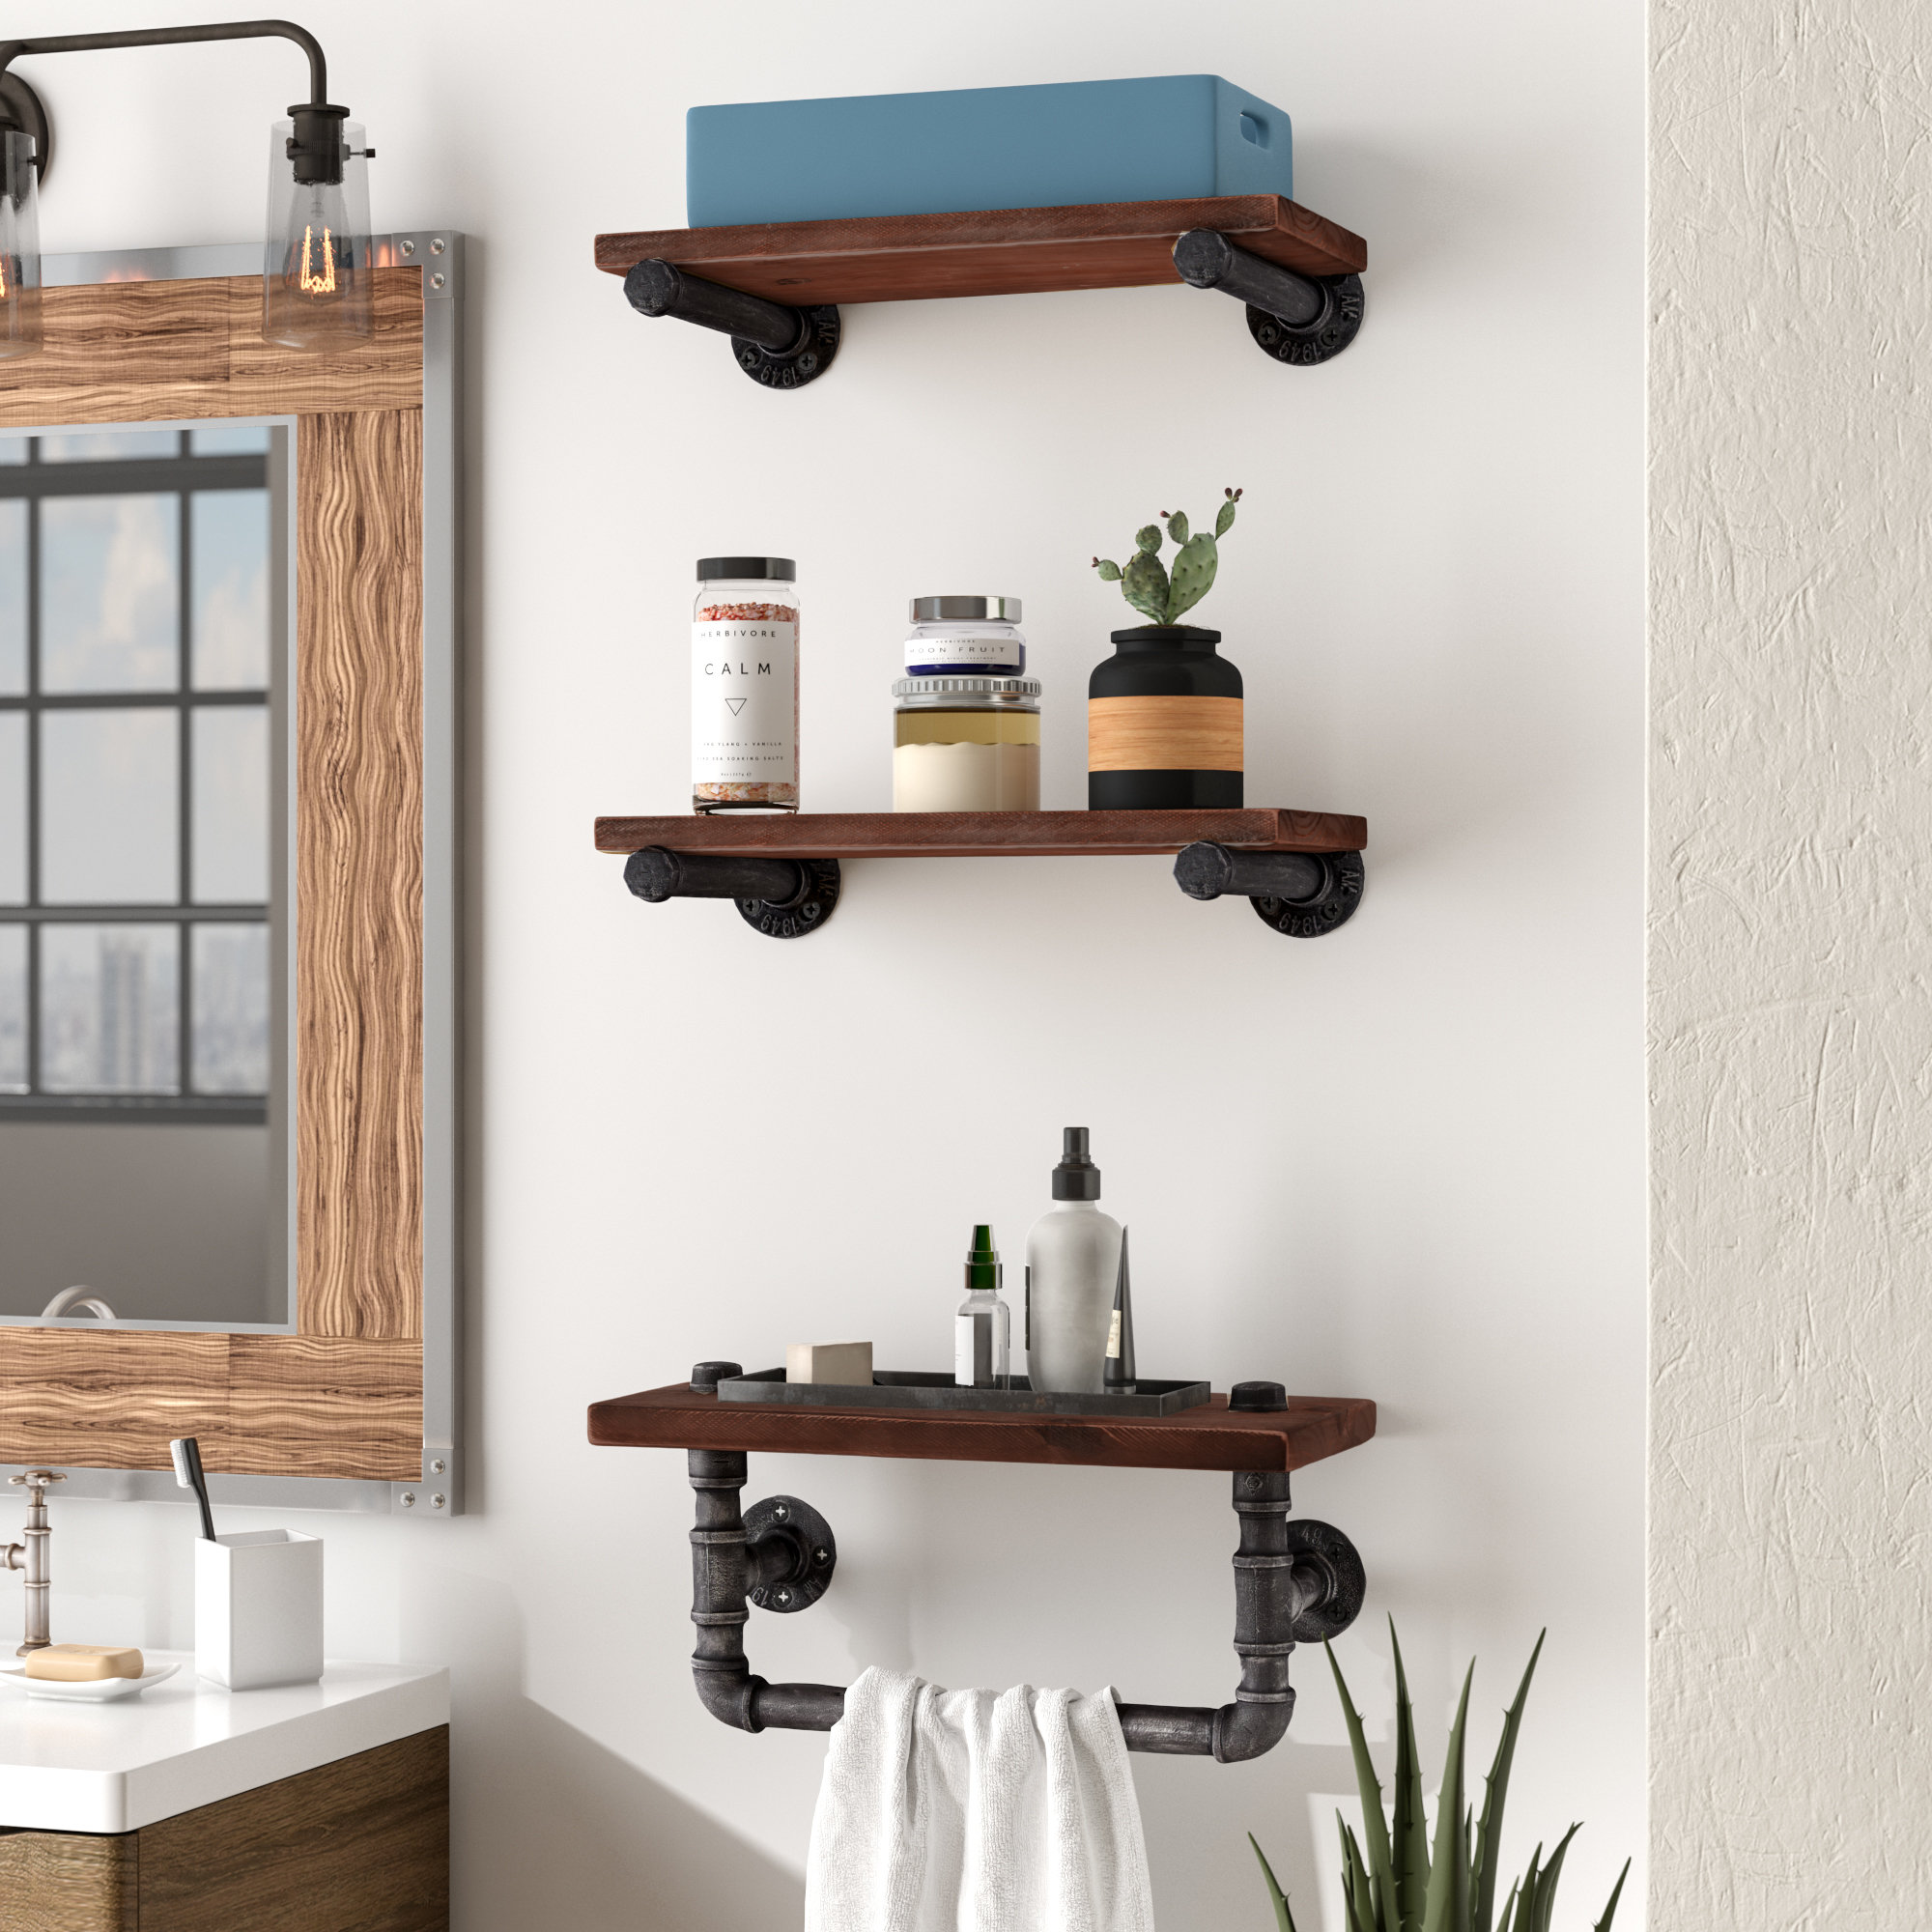 trent austin design industrial walnut wood floating piece wall shelf shelves masters set reviews kitchen wire quarter round corner oak unit tree stand coat rack closet brackets